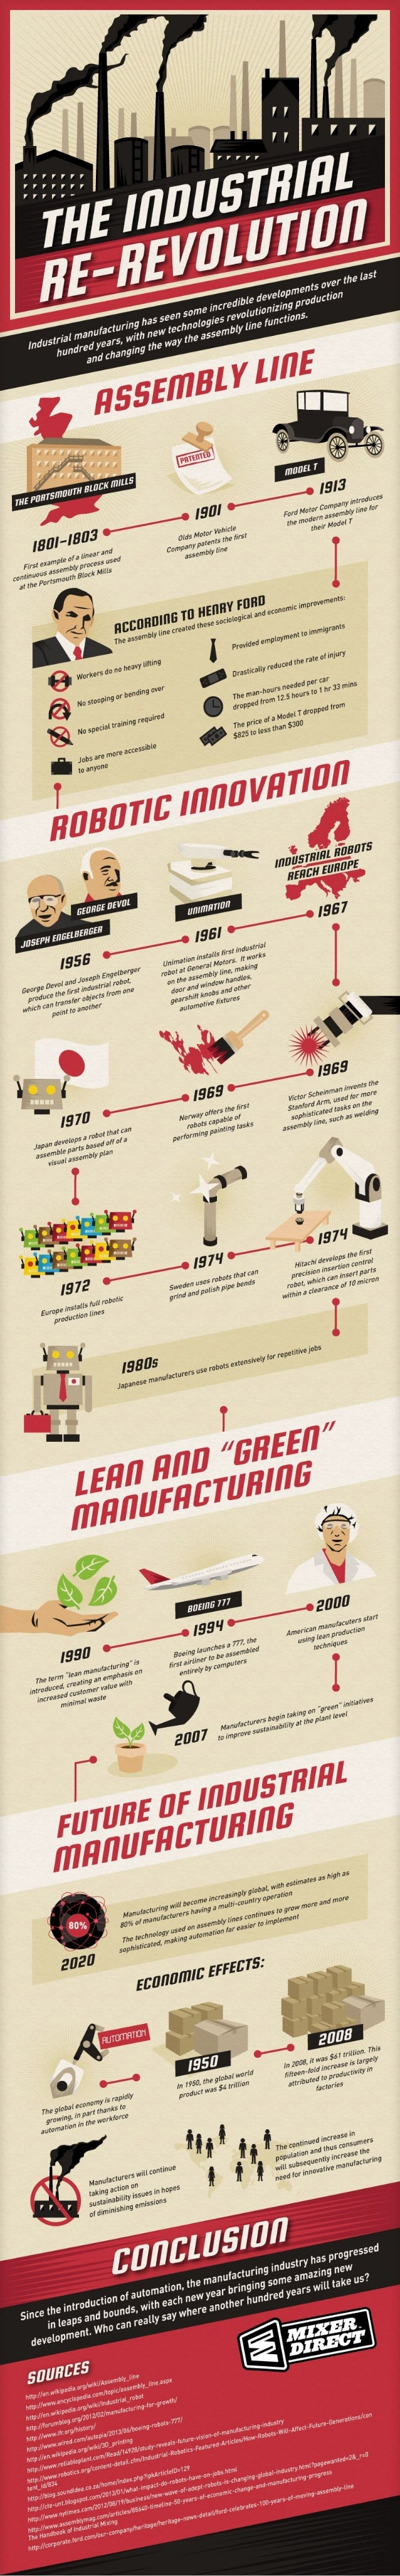 Industrial Re-revolution [Infographic]